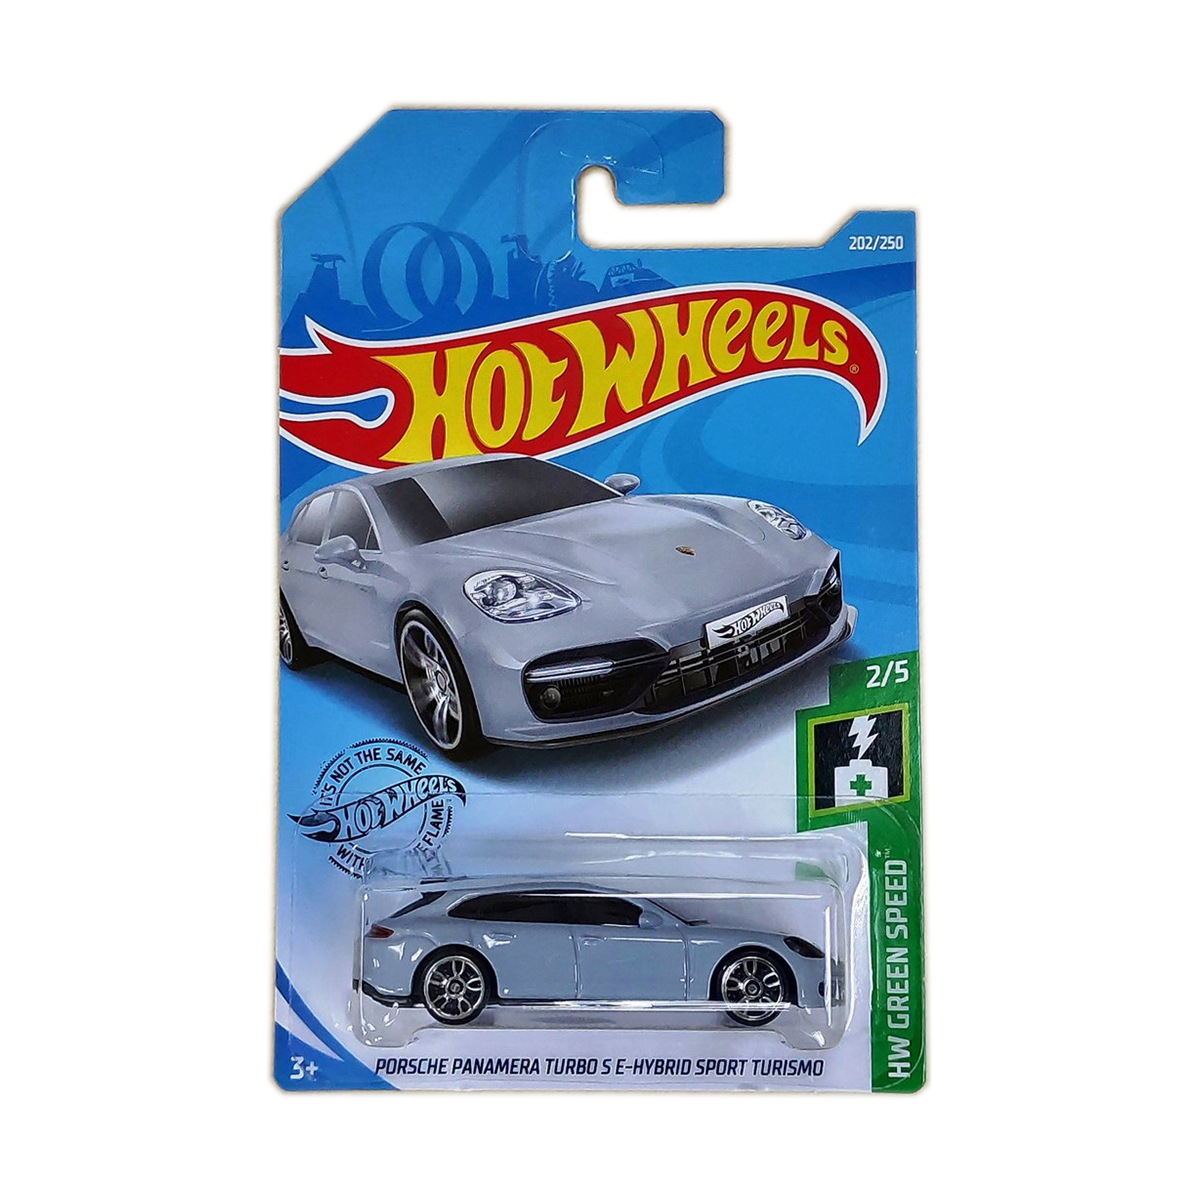 Masinute Asortate Hot Wheels 5785, 1:64